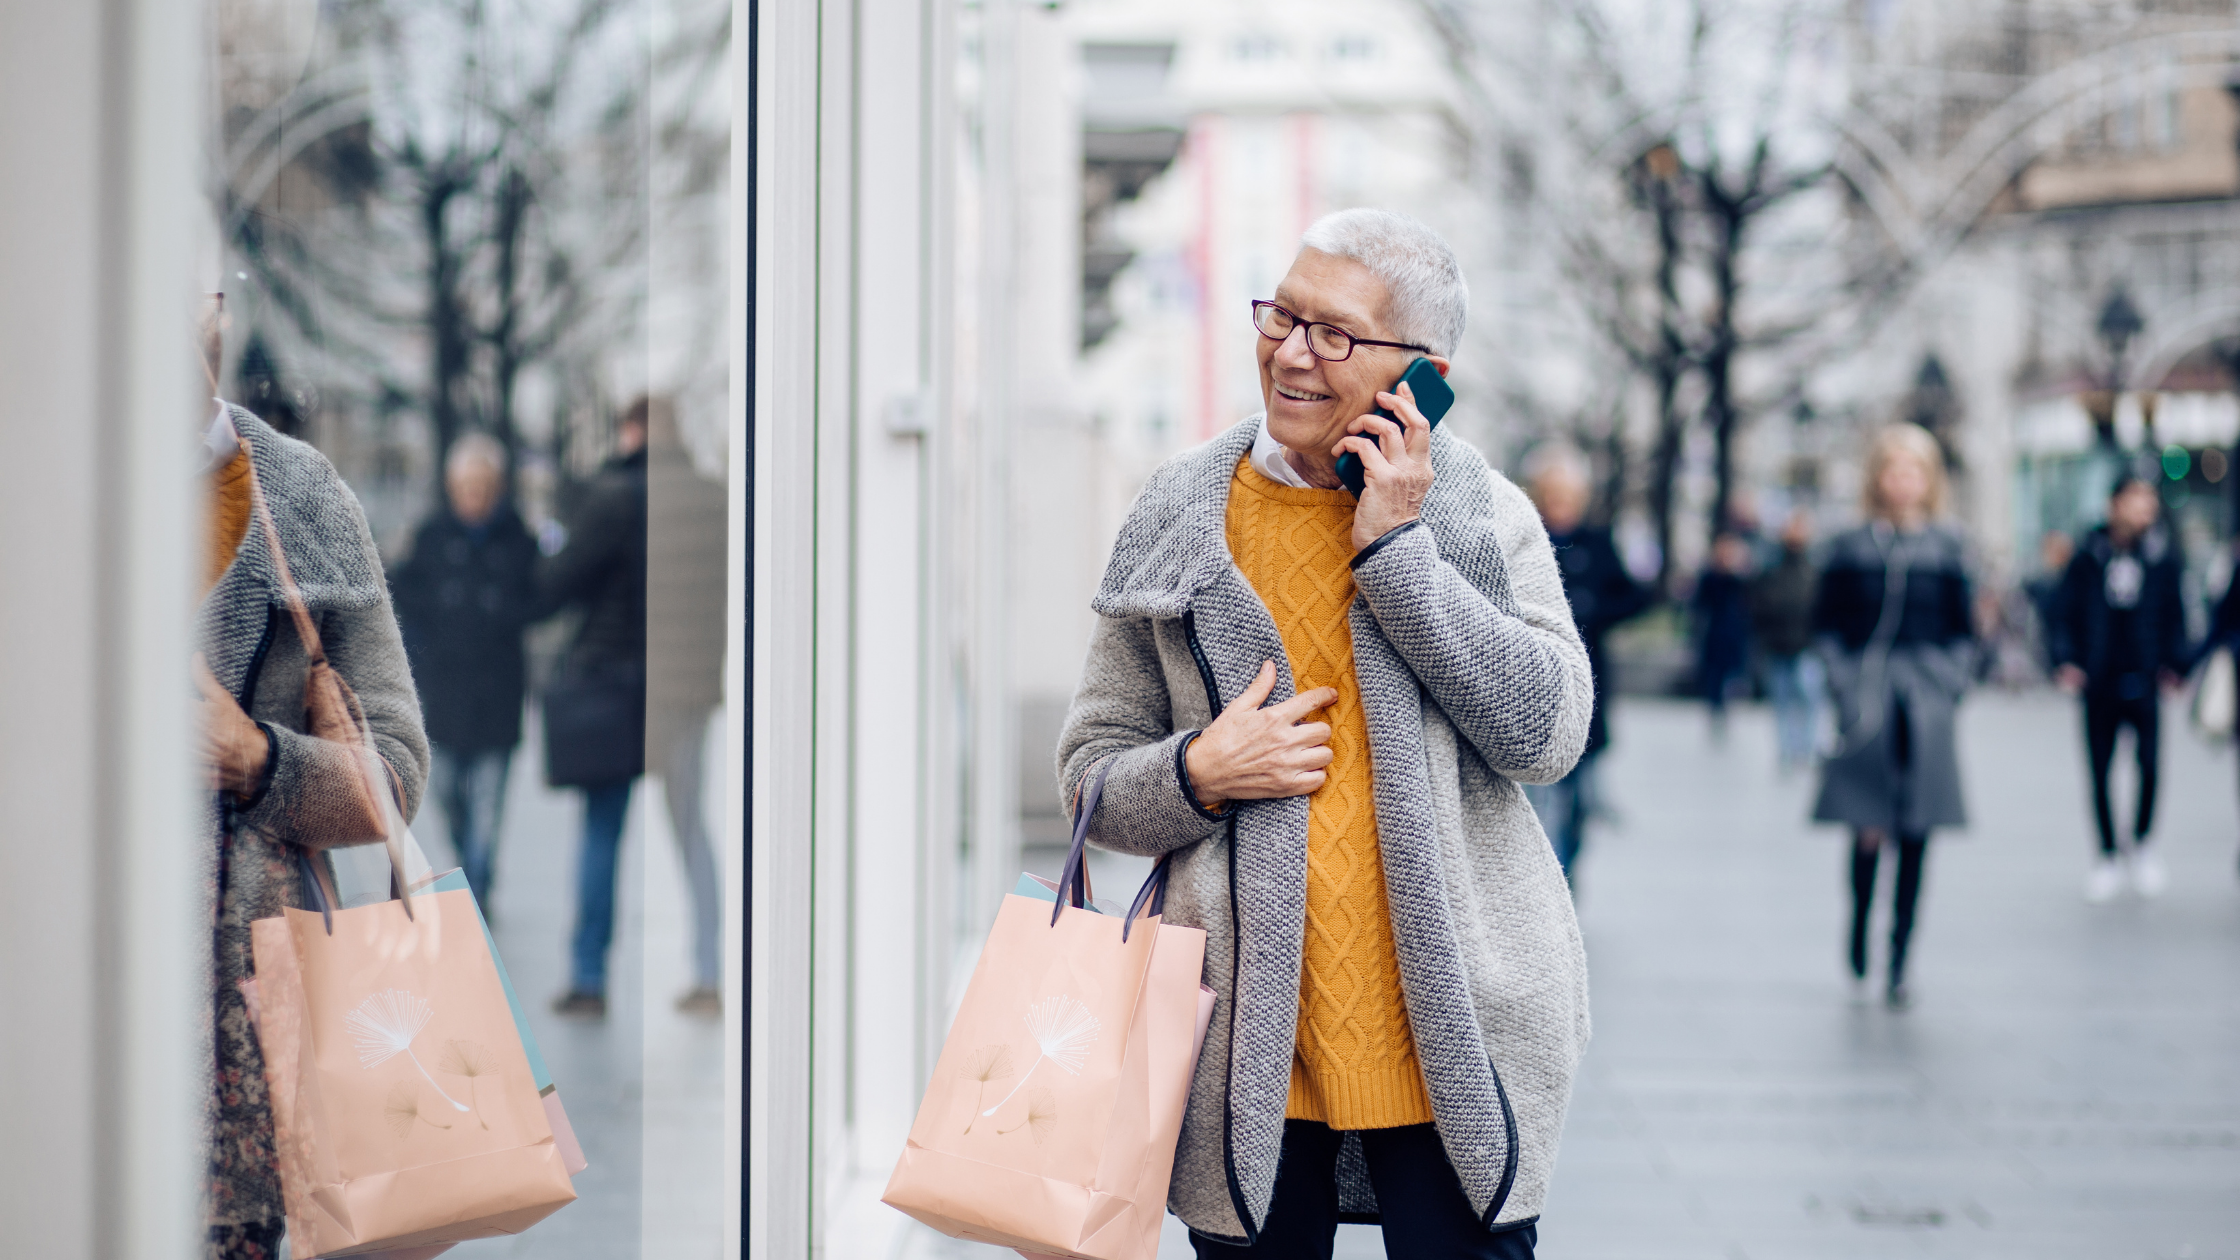 An older woman with short white hair and red rimmed glasses standing on a street with a shopping bag. She is talking on her phone and smiling.